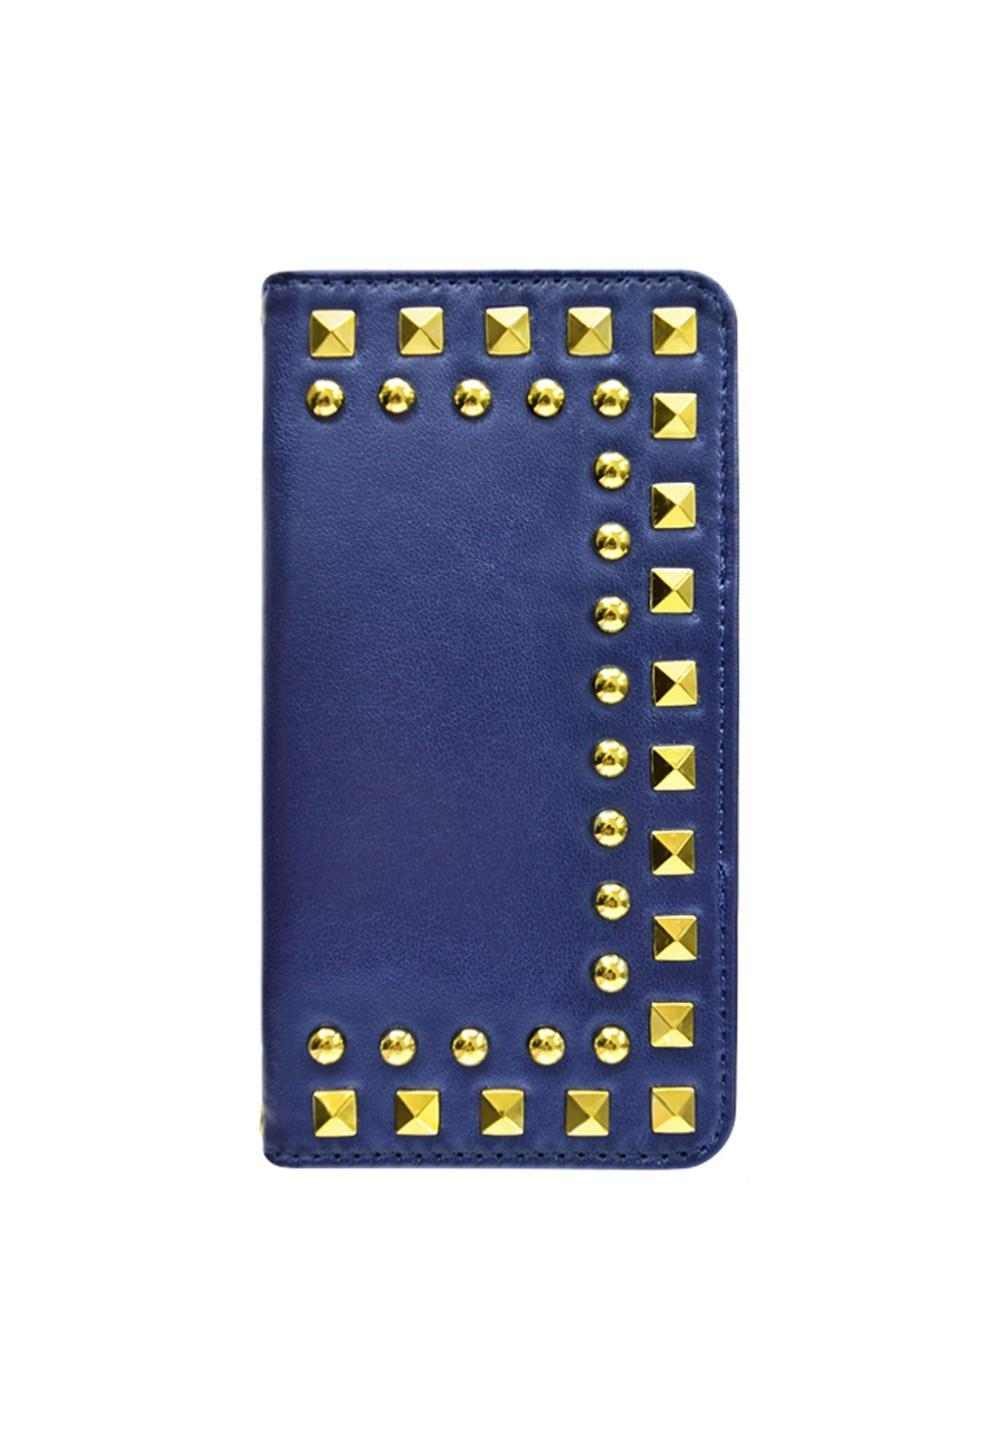 UNiCASE BLUE LABEL / Studded Diary Navy for iPhone6s/6 - #1